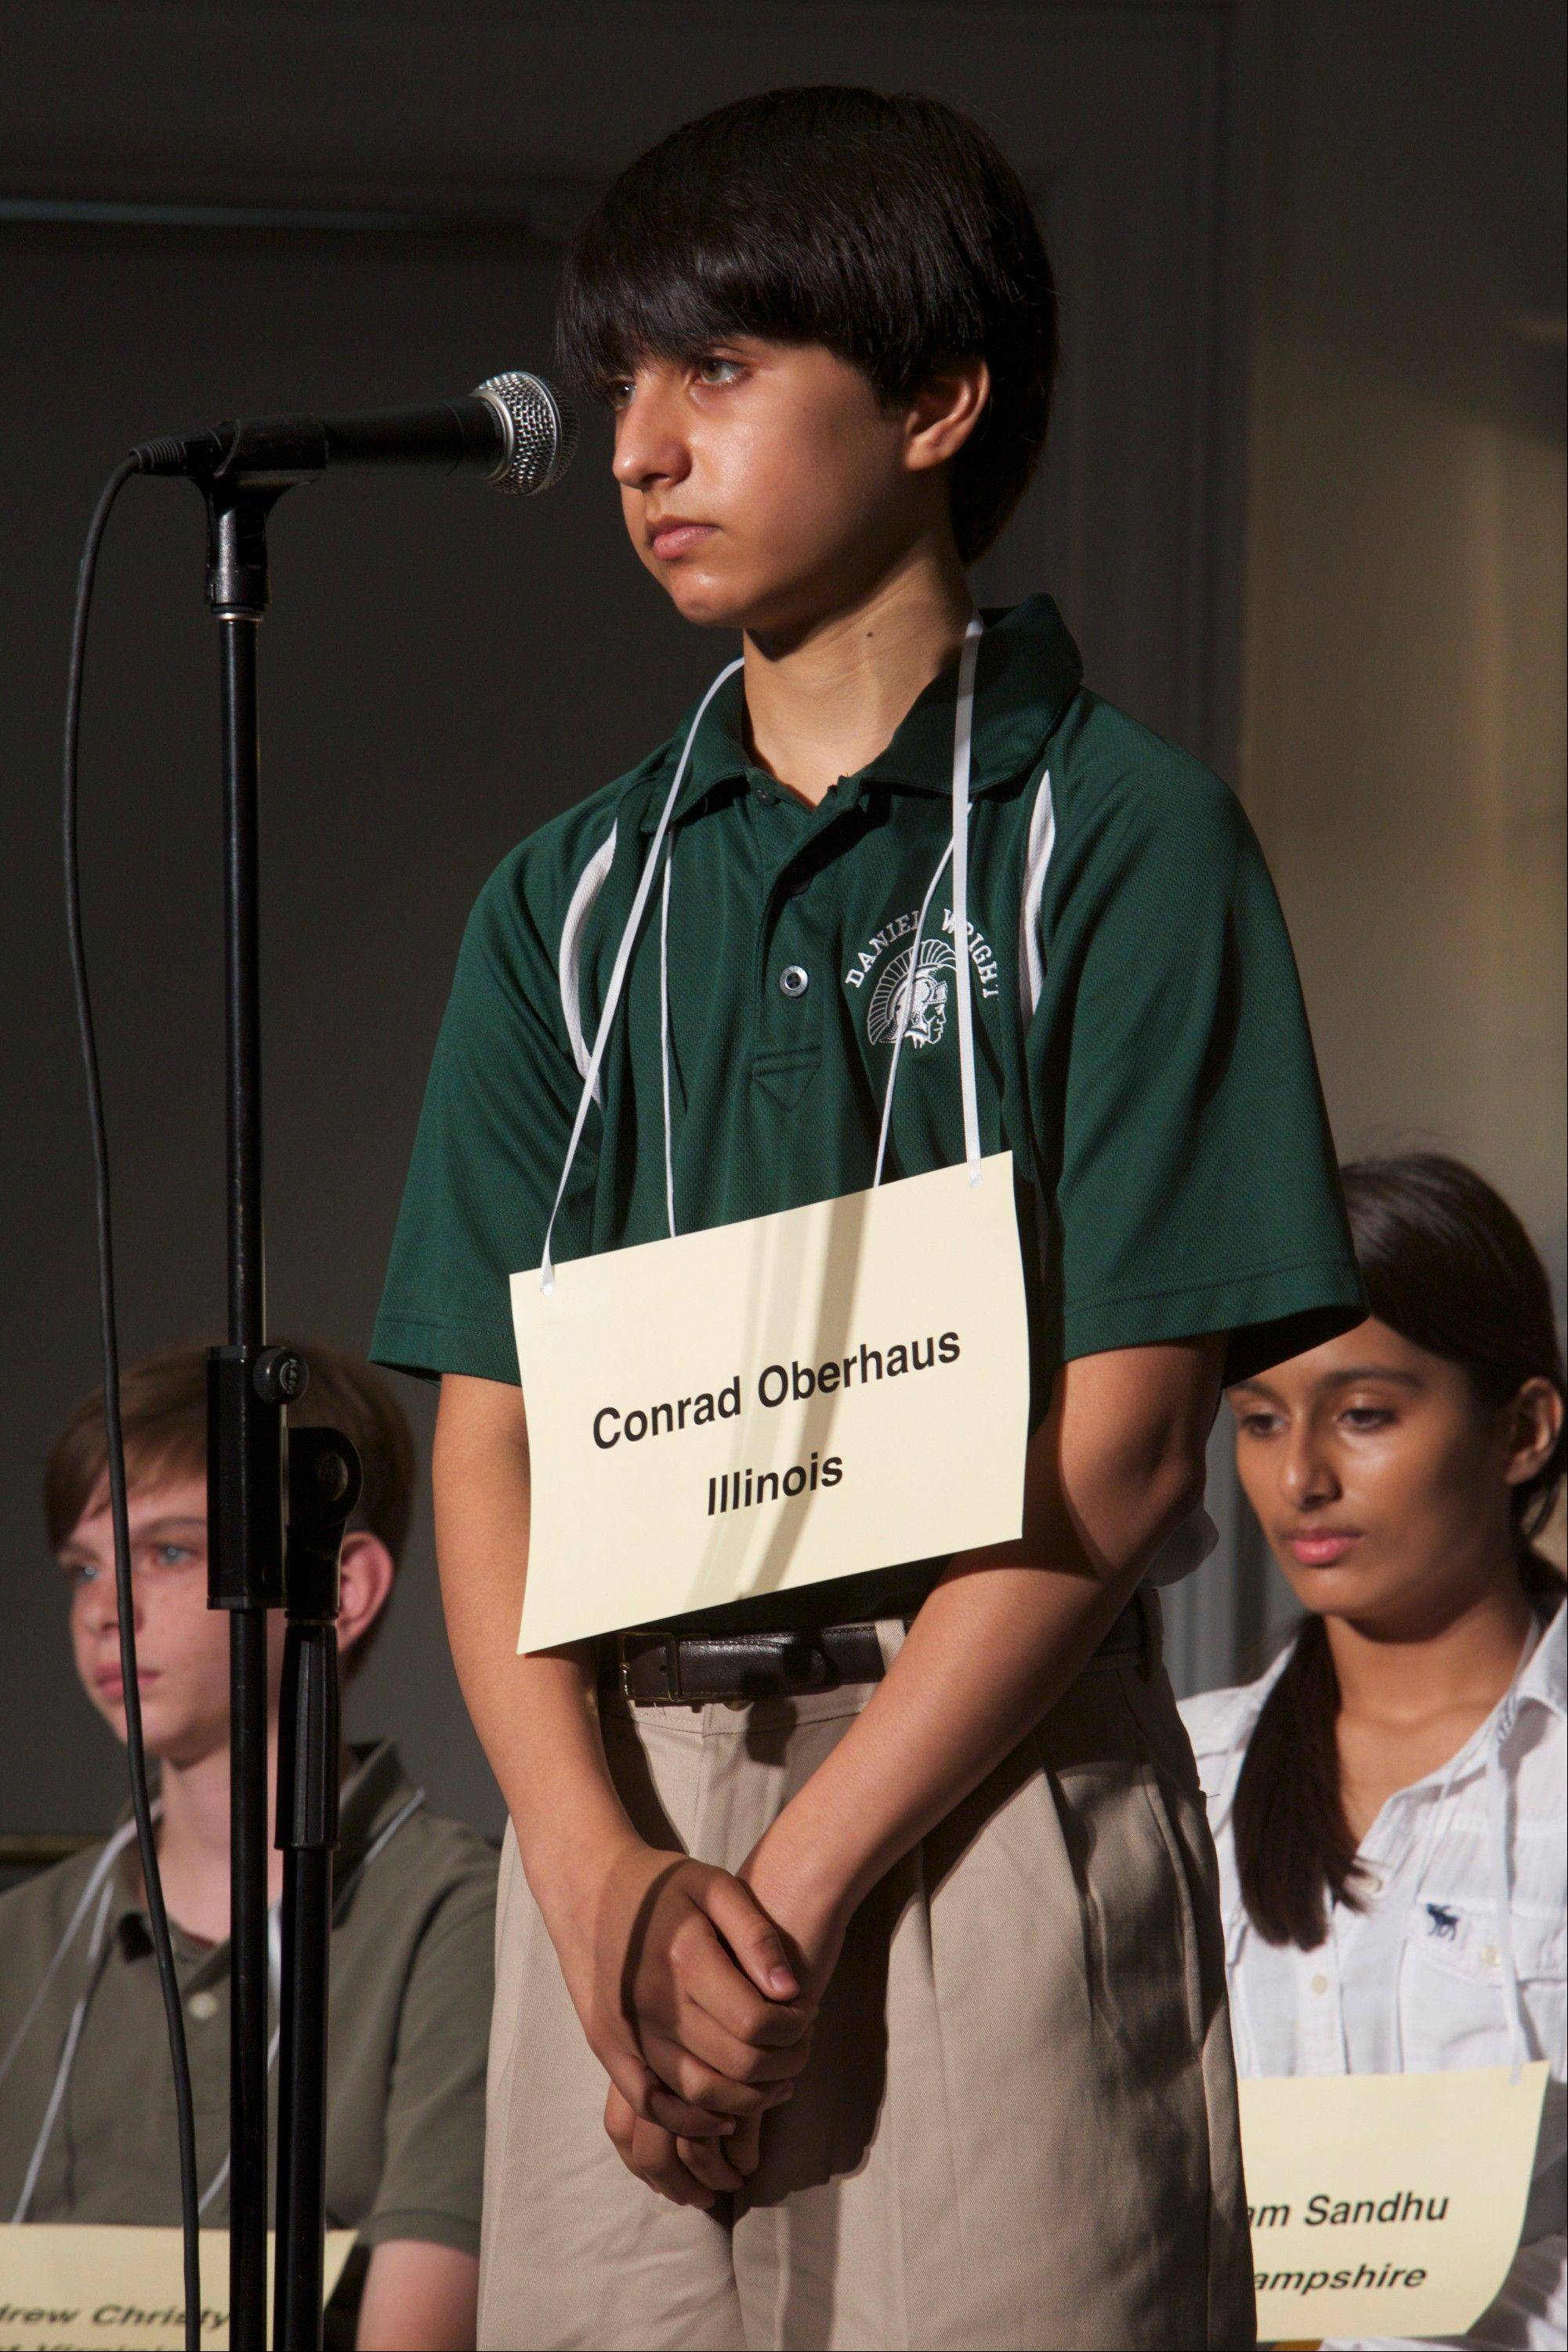 Conrad Oberhaus, a student at Daniel Wright Junior High in Lincolnshire, competes in a preliminary round of the 2013 National Geographic Bee on Monday in Washington, D.C.